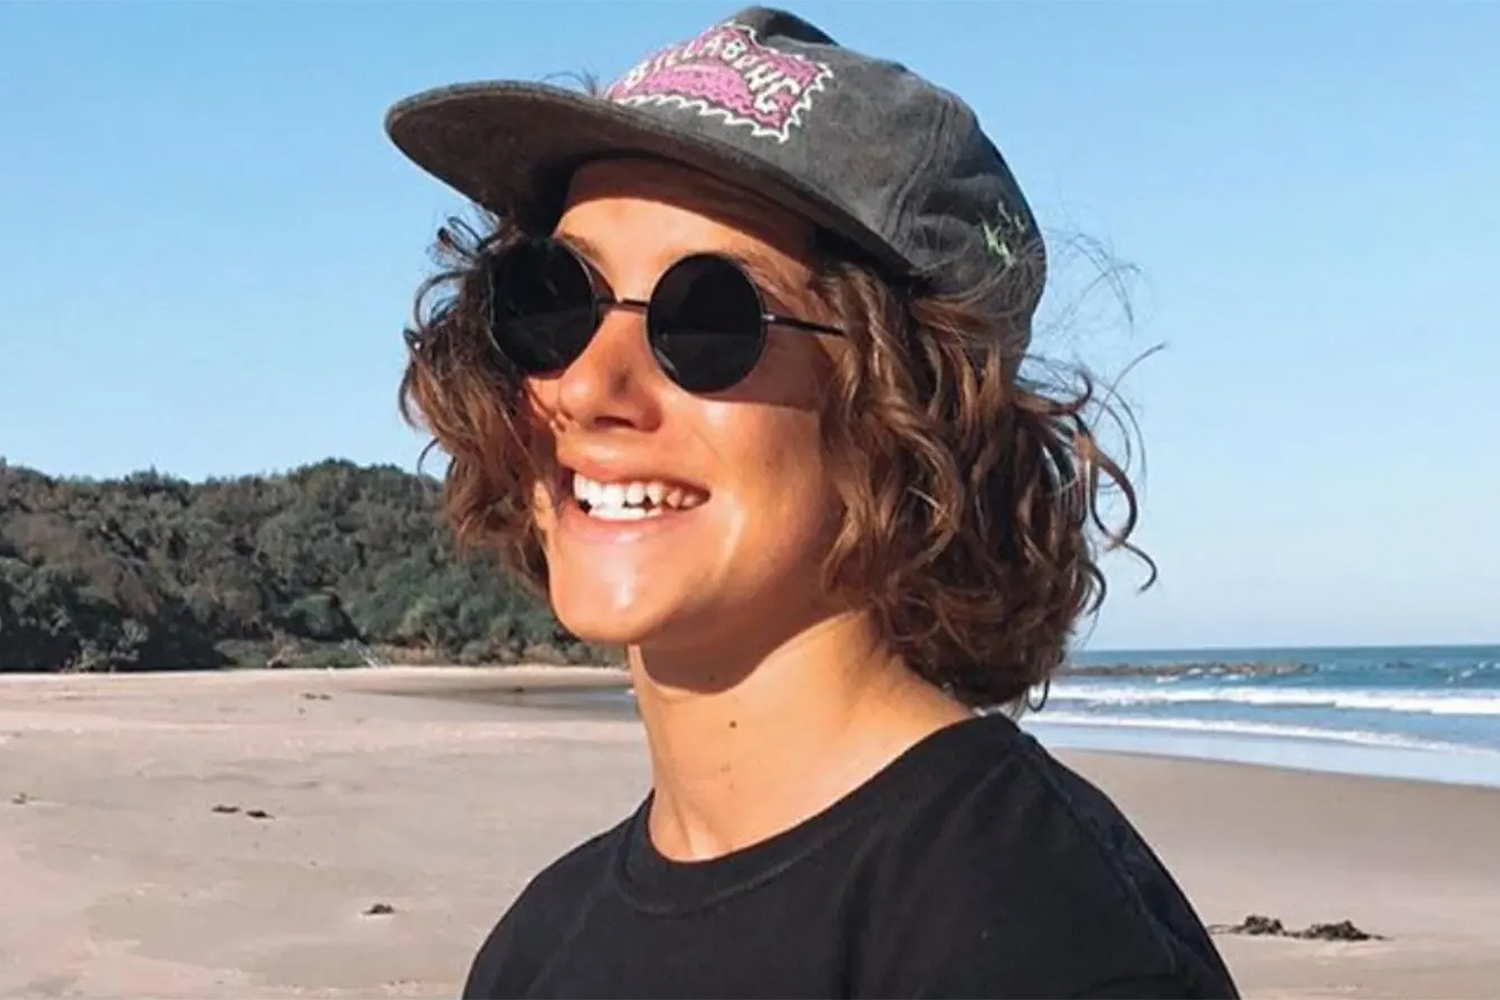 15 Year Old Surfer Mani Hart Deville Dies Of Shark Attack In Australia People Com